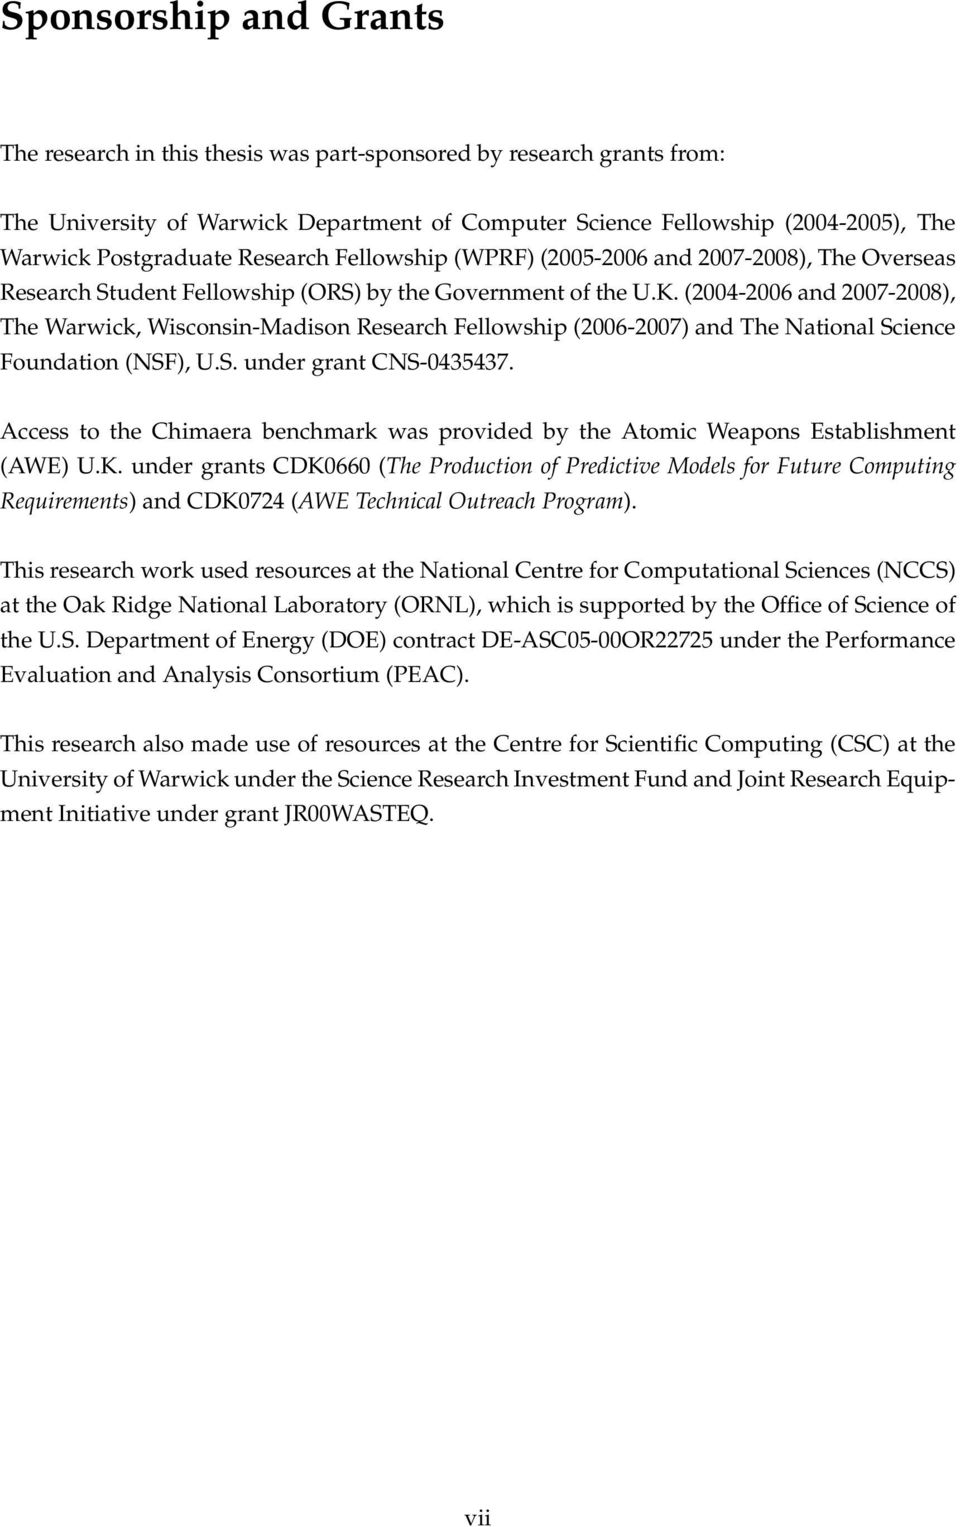 (2004-2006 and 2007-2008), The Warwick, Wisconsin-Madison Research Fellowship (2006-2007) and The National Science Foundation (NSF), U.S. under grant CNS-0435437.